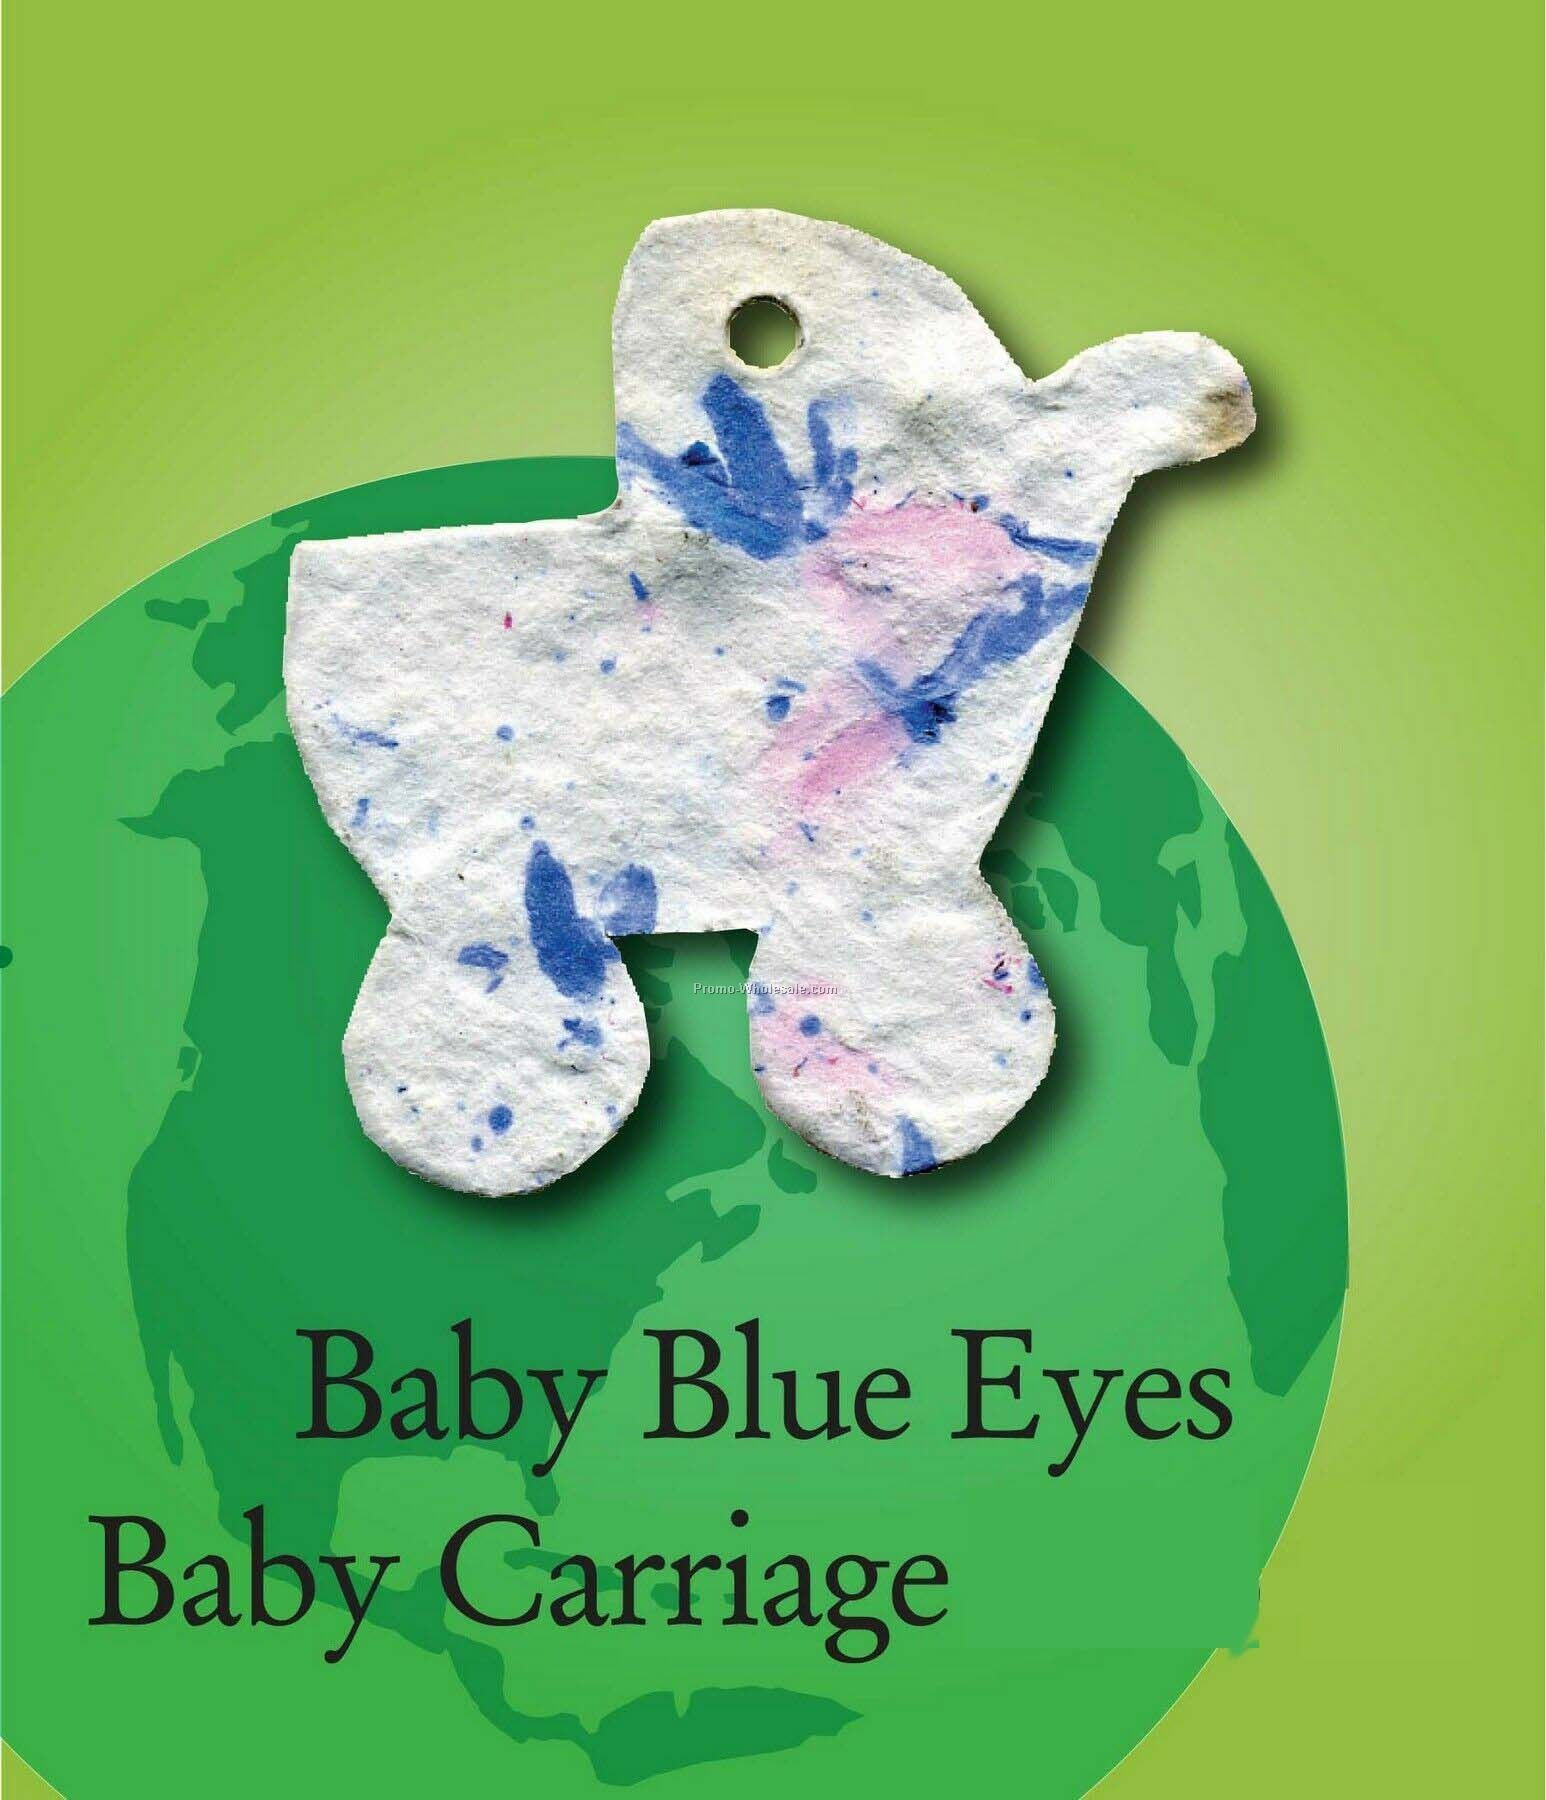 Baby Blue Eyes Baby Carriage Handmade Seed Plantable Mini